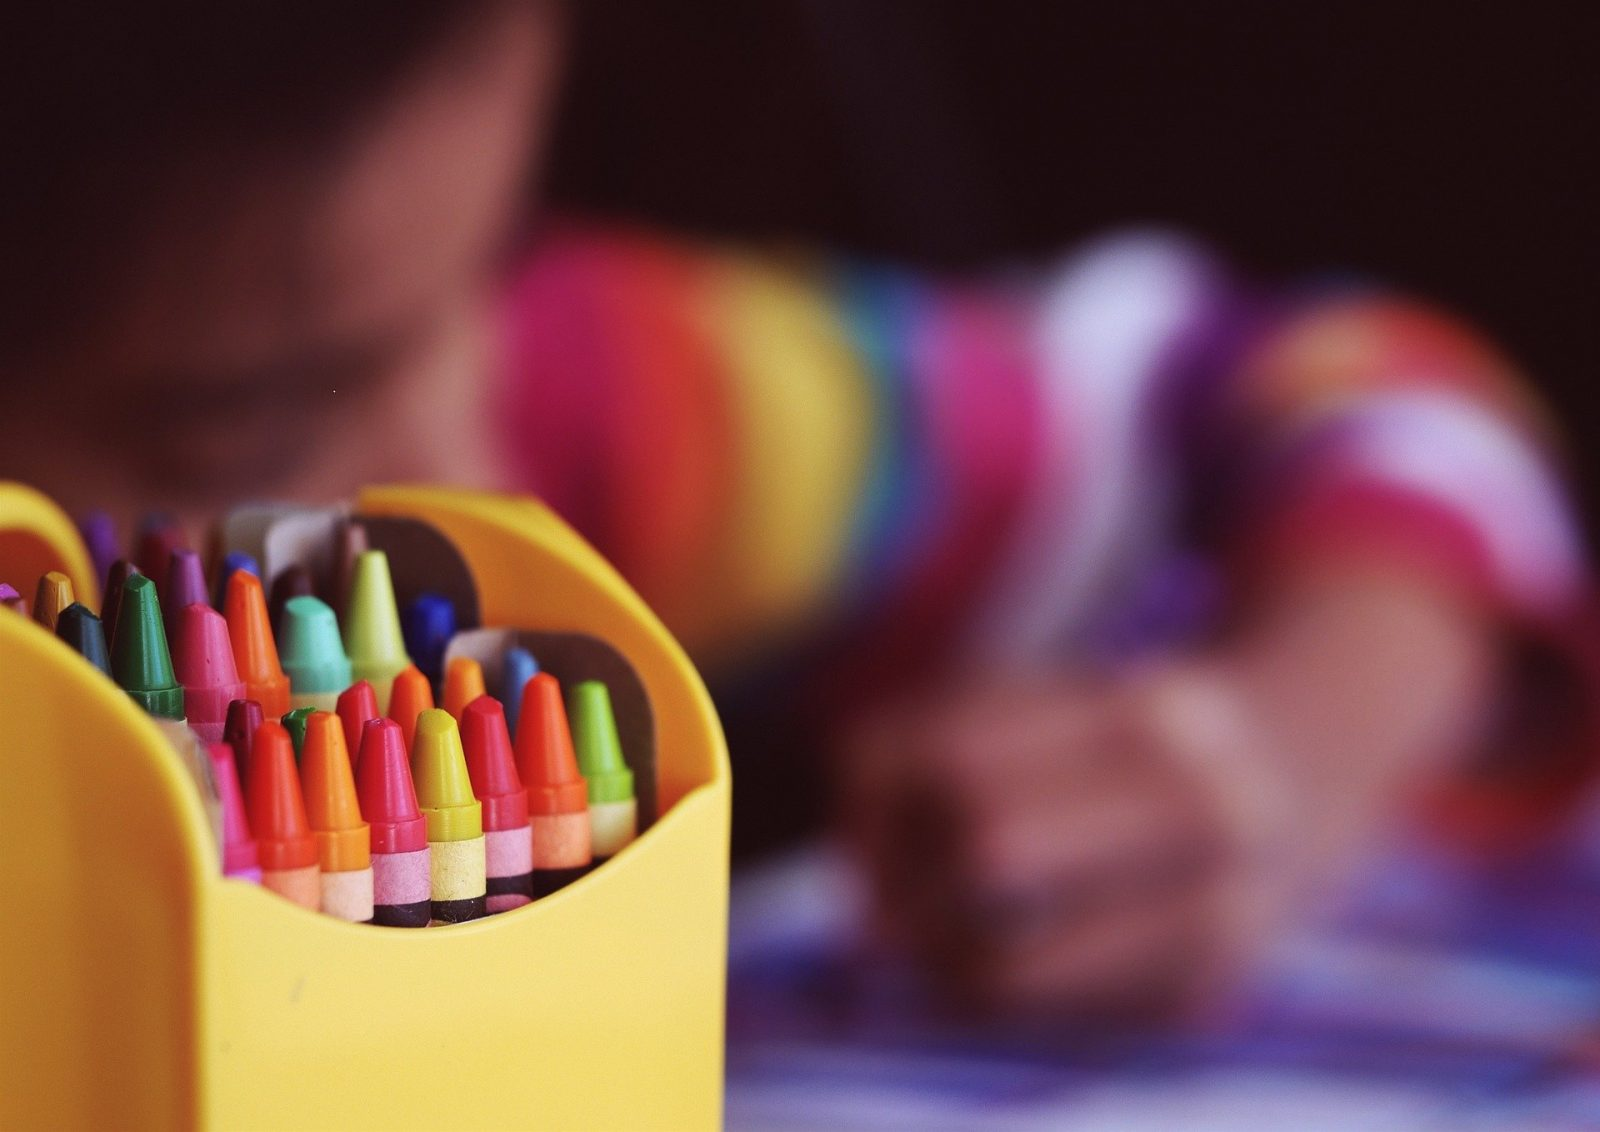 Helping Parents to Support Anxious Children to Return to School, crayons 1209804 1920 1600x1132%, daily-dad, education%